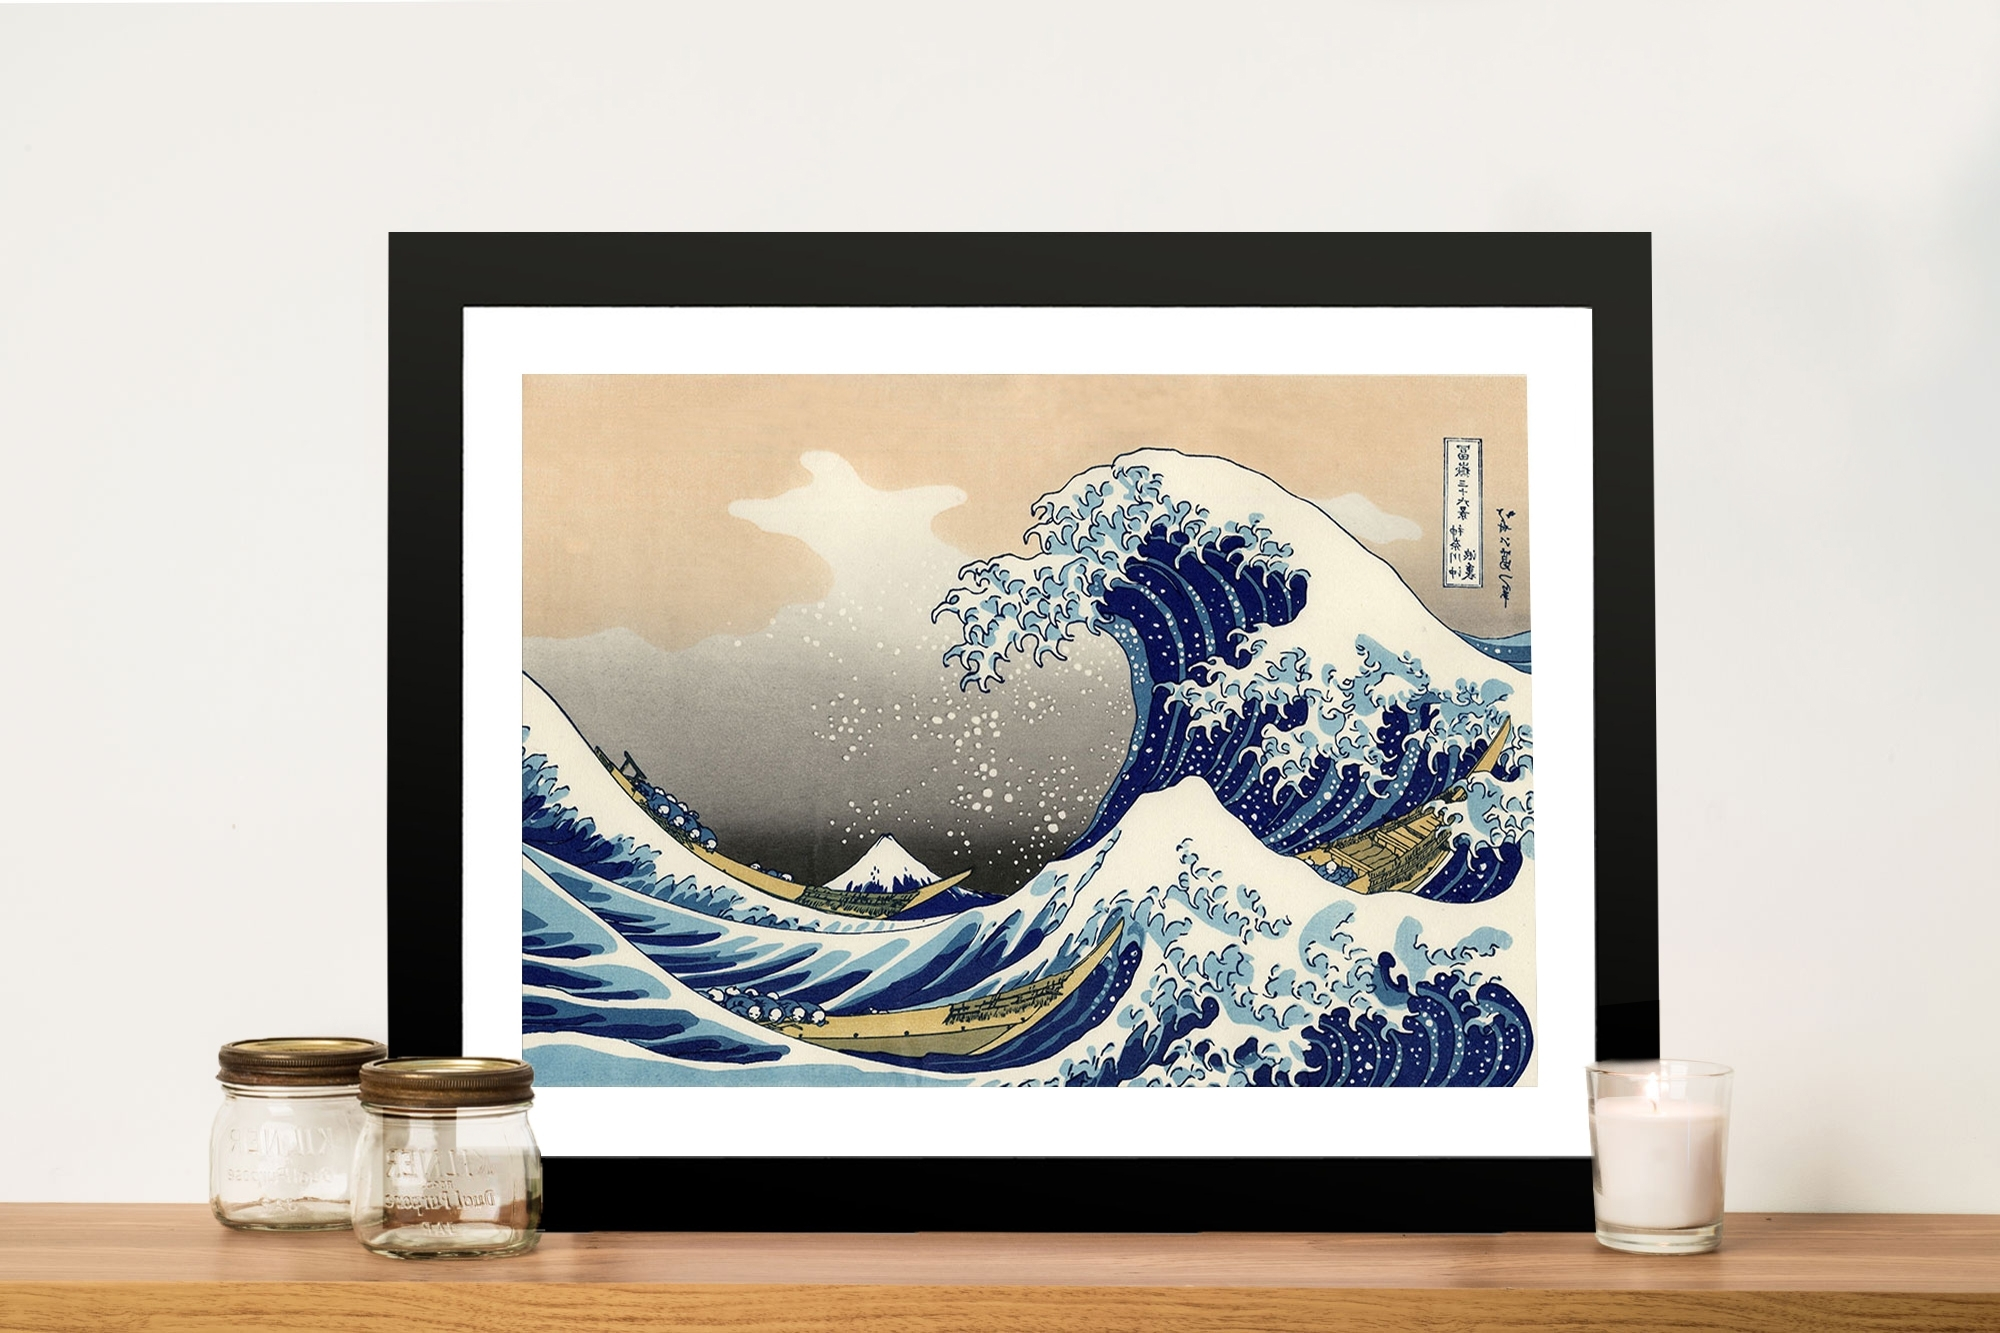 Latest Mandurah Canvas Wall Art In Surfing, Oceans And Seascape Canvas Wall Art Prints (View 3 of 15)